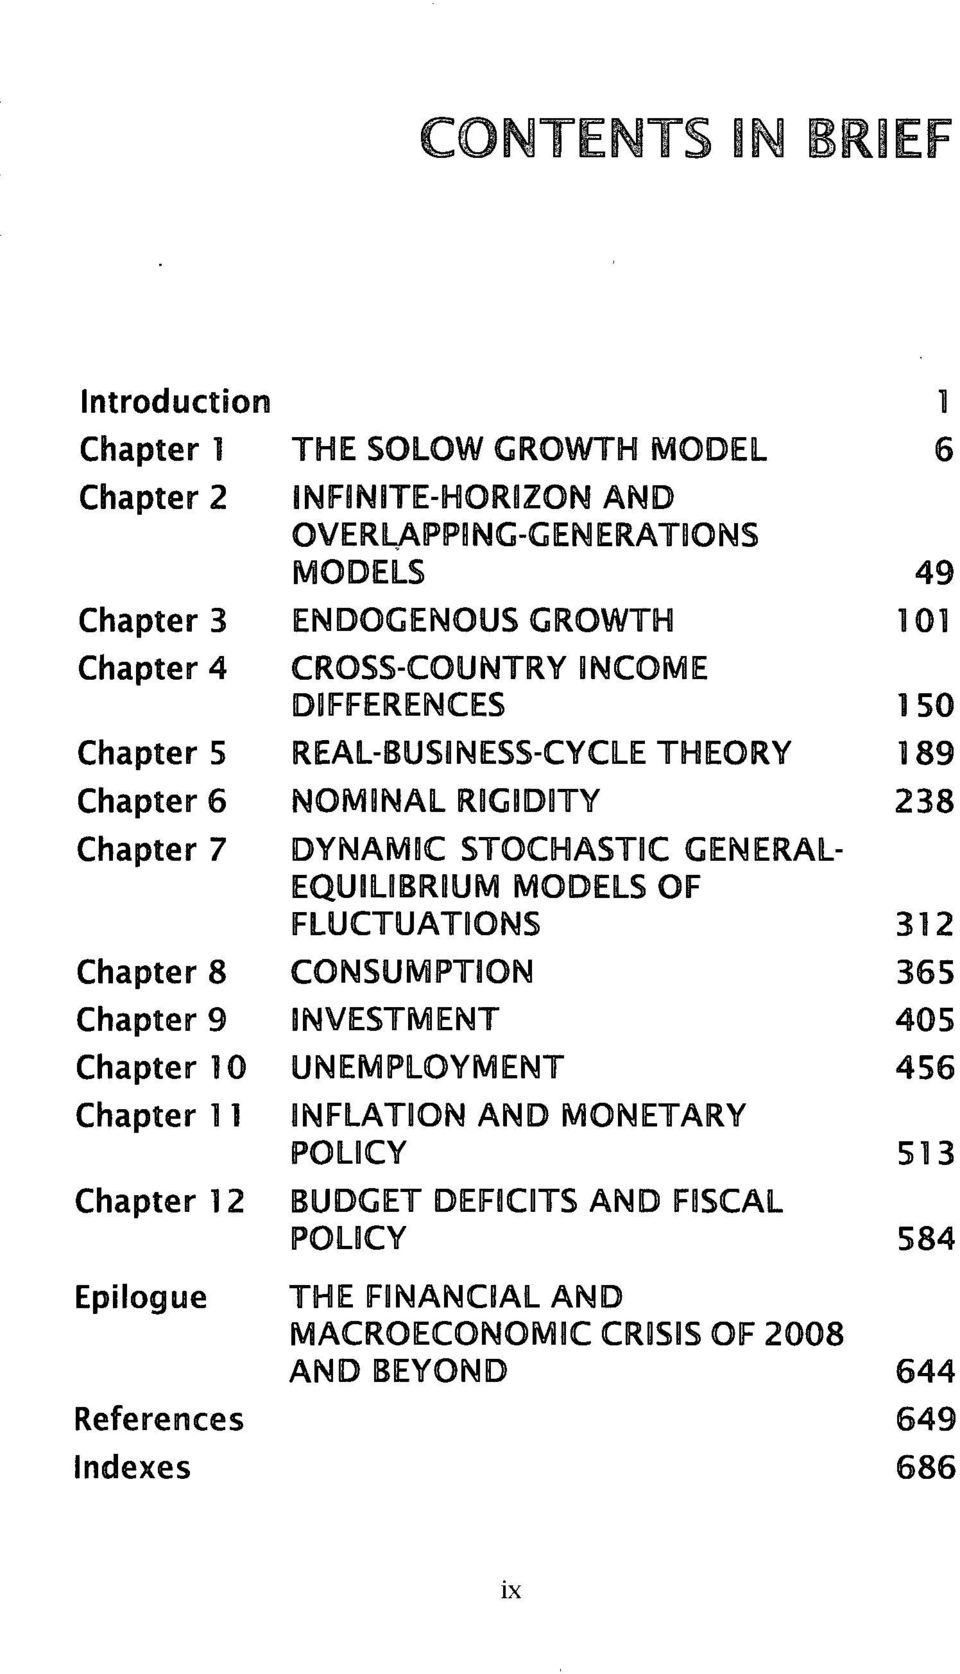 REAL-BUSINESS-CYCLE THEORY NOMBNAL RBG1DBTY DYNAMDC STOCHASTIC GENERAL- EQU1LIBRBUM MODELS OF FLUCTUATIONS CONSUMPTION INVESTMENT UNEMPLOYMENT INFLATION